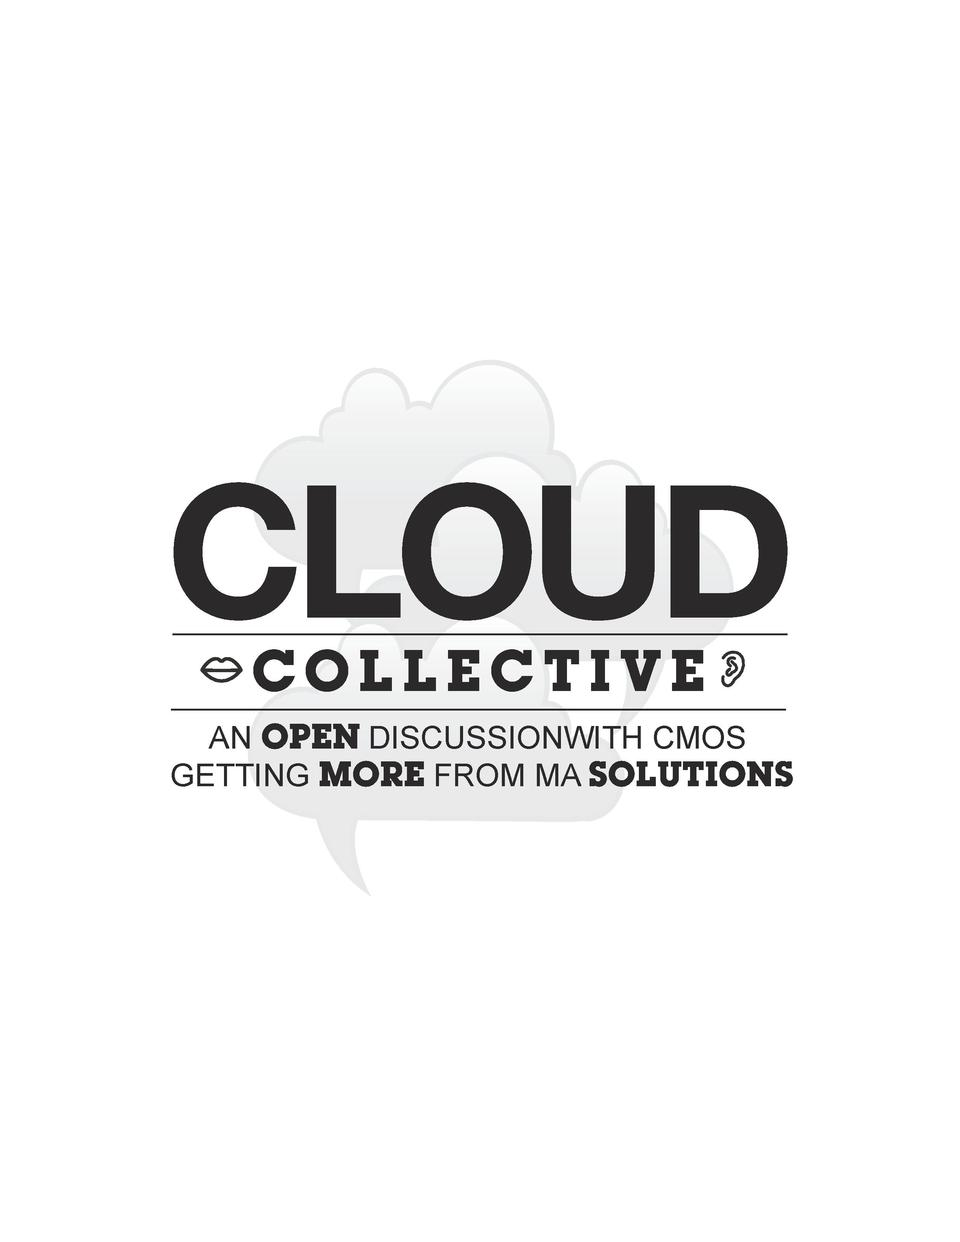 CLOUD COLLECTIVE  AN OPEN DISCUSSIONWITH CMOS GETTING MORE FROM MA SOLUTIONS